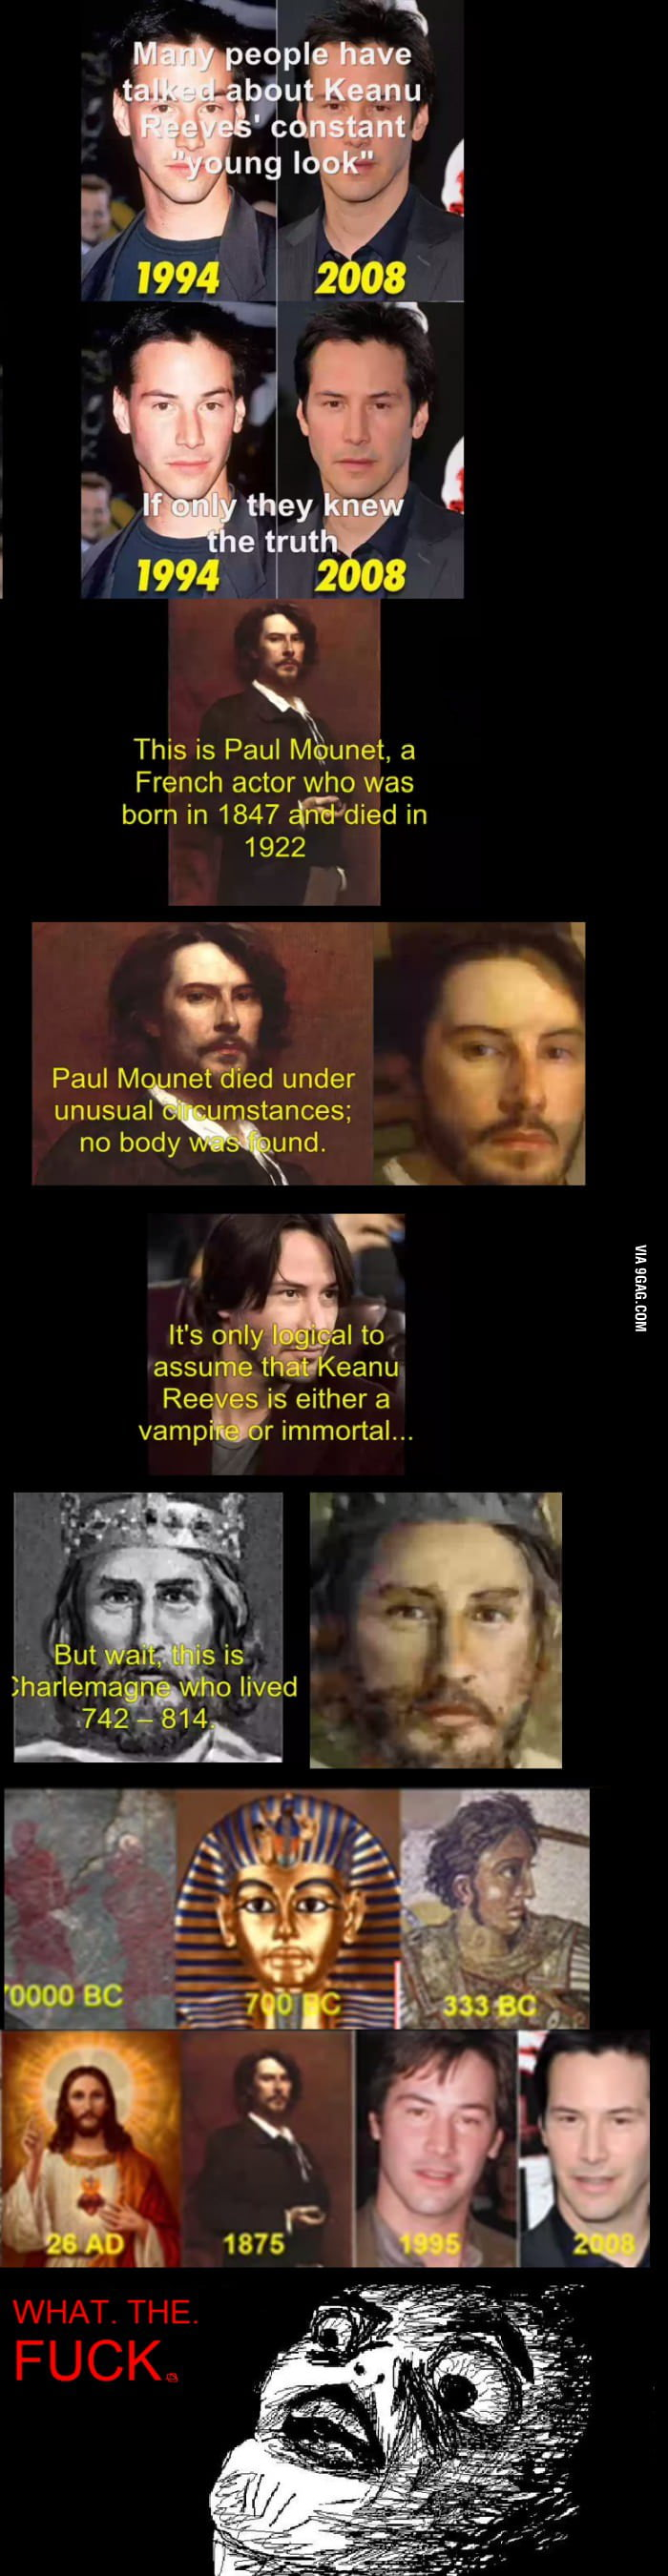 The immortal Keanu Reeves.